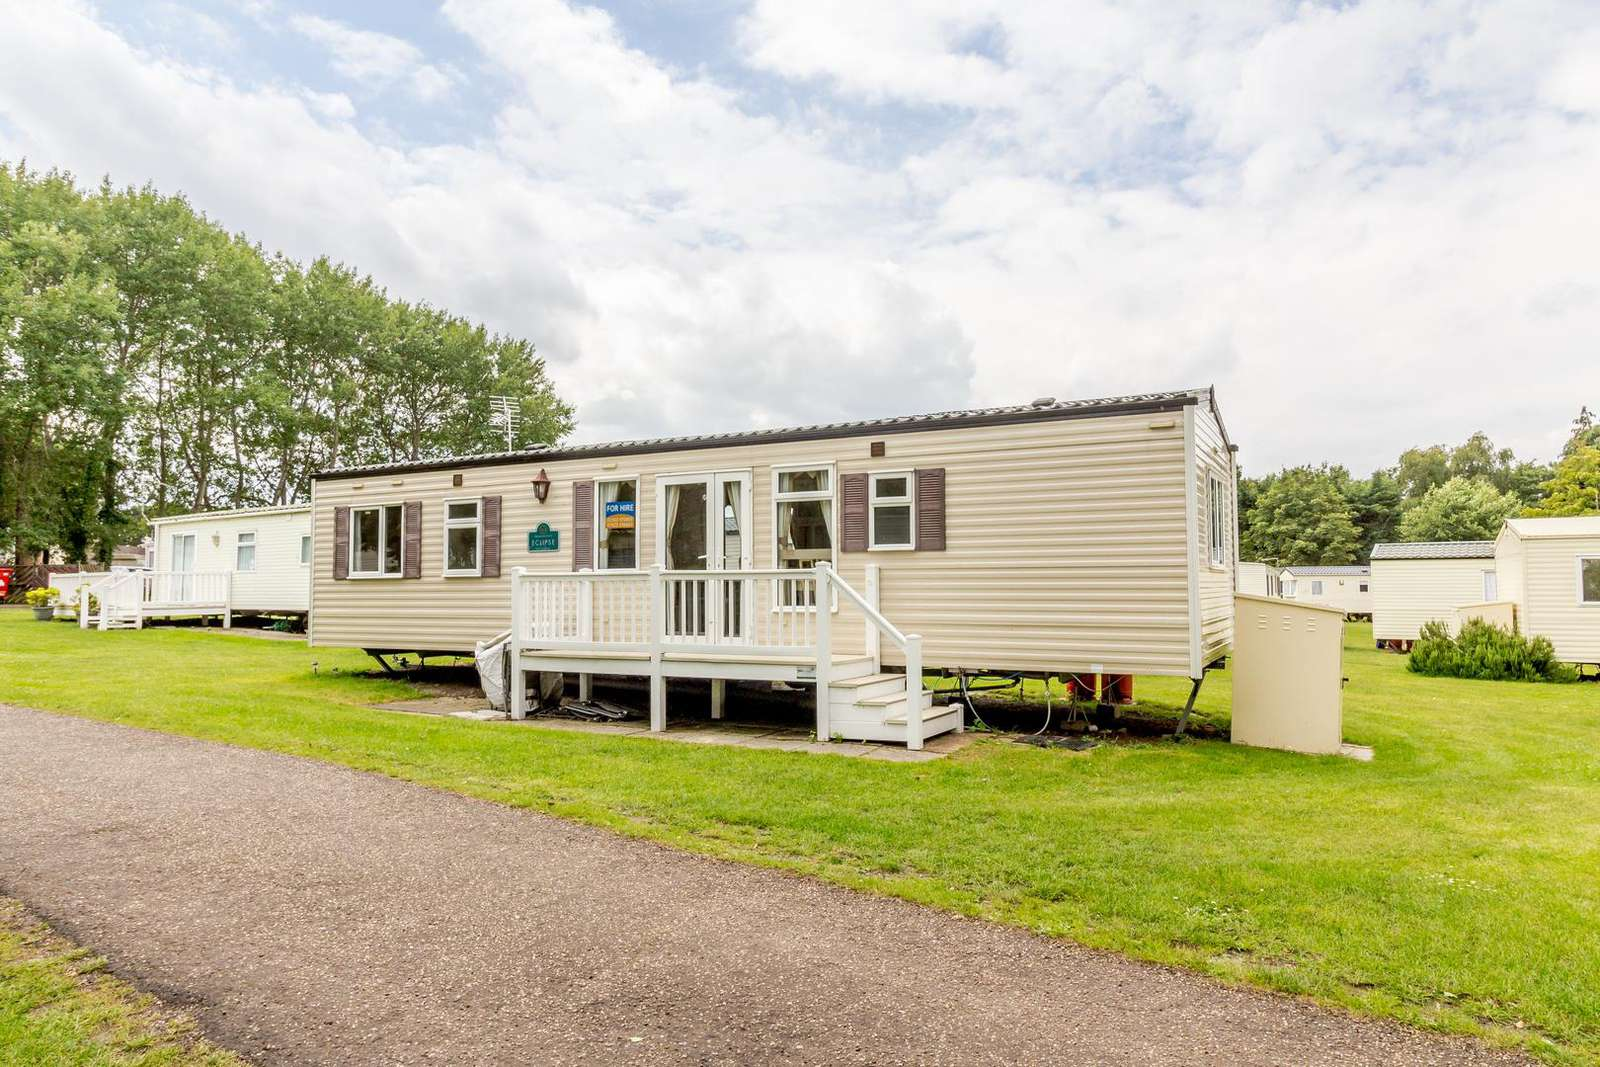 So many families have enjoyed a stay at this caravan!